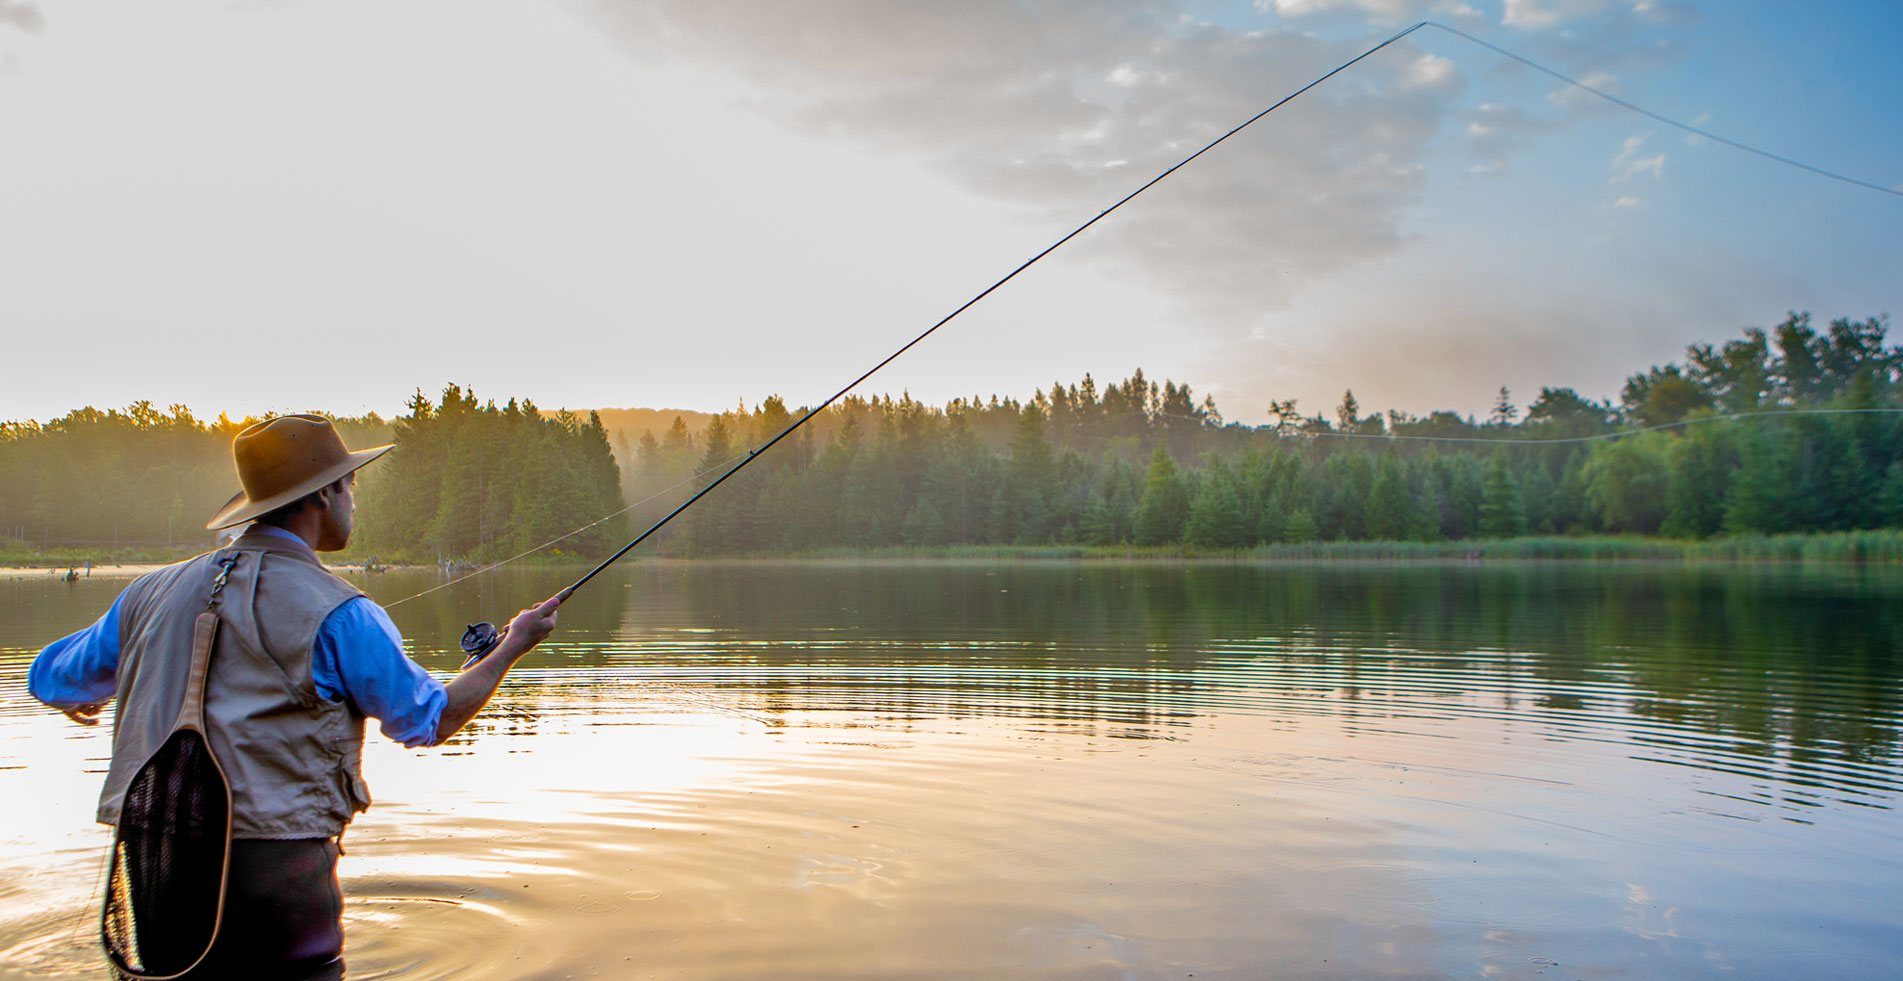 LEARN THE ART OF FLY FISHING